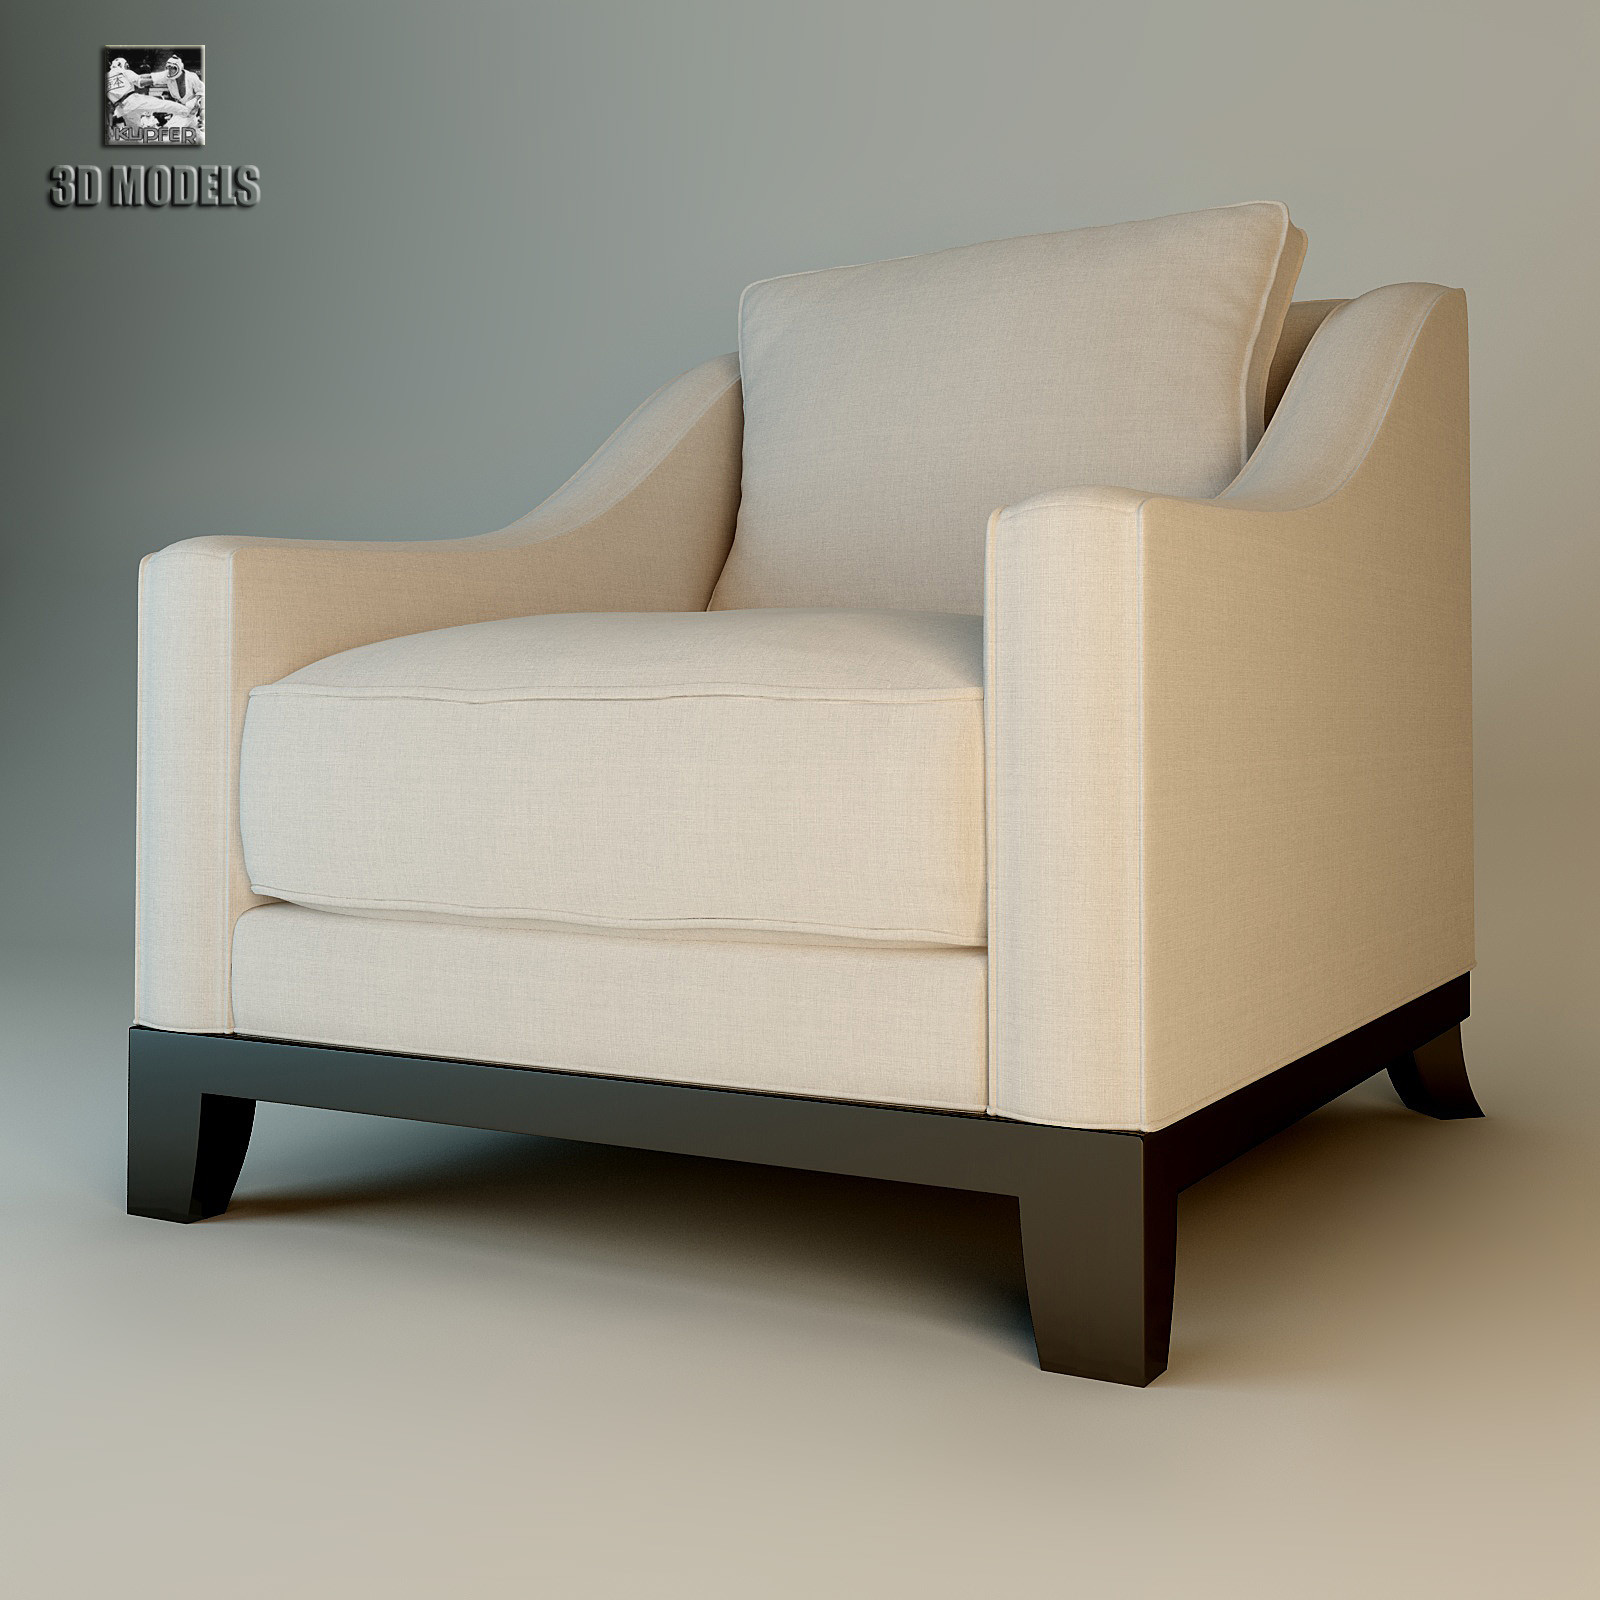 Stl finder 3d models for baker thomas pheasant greek lounge chair armchair 631 modern art - Deco lounge oud en modern ...